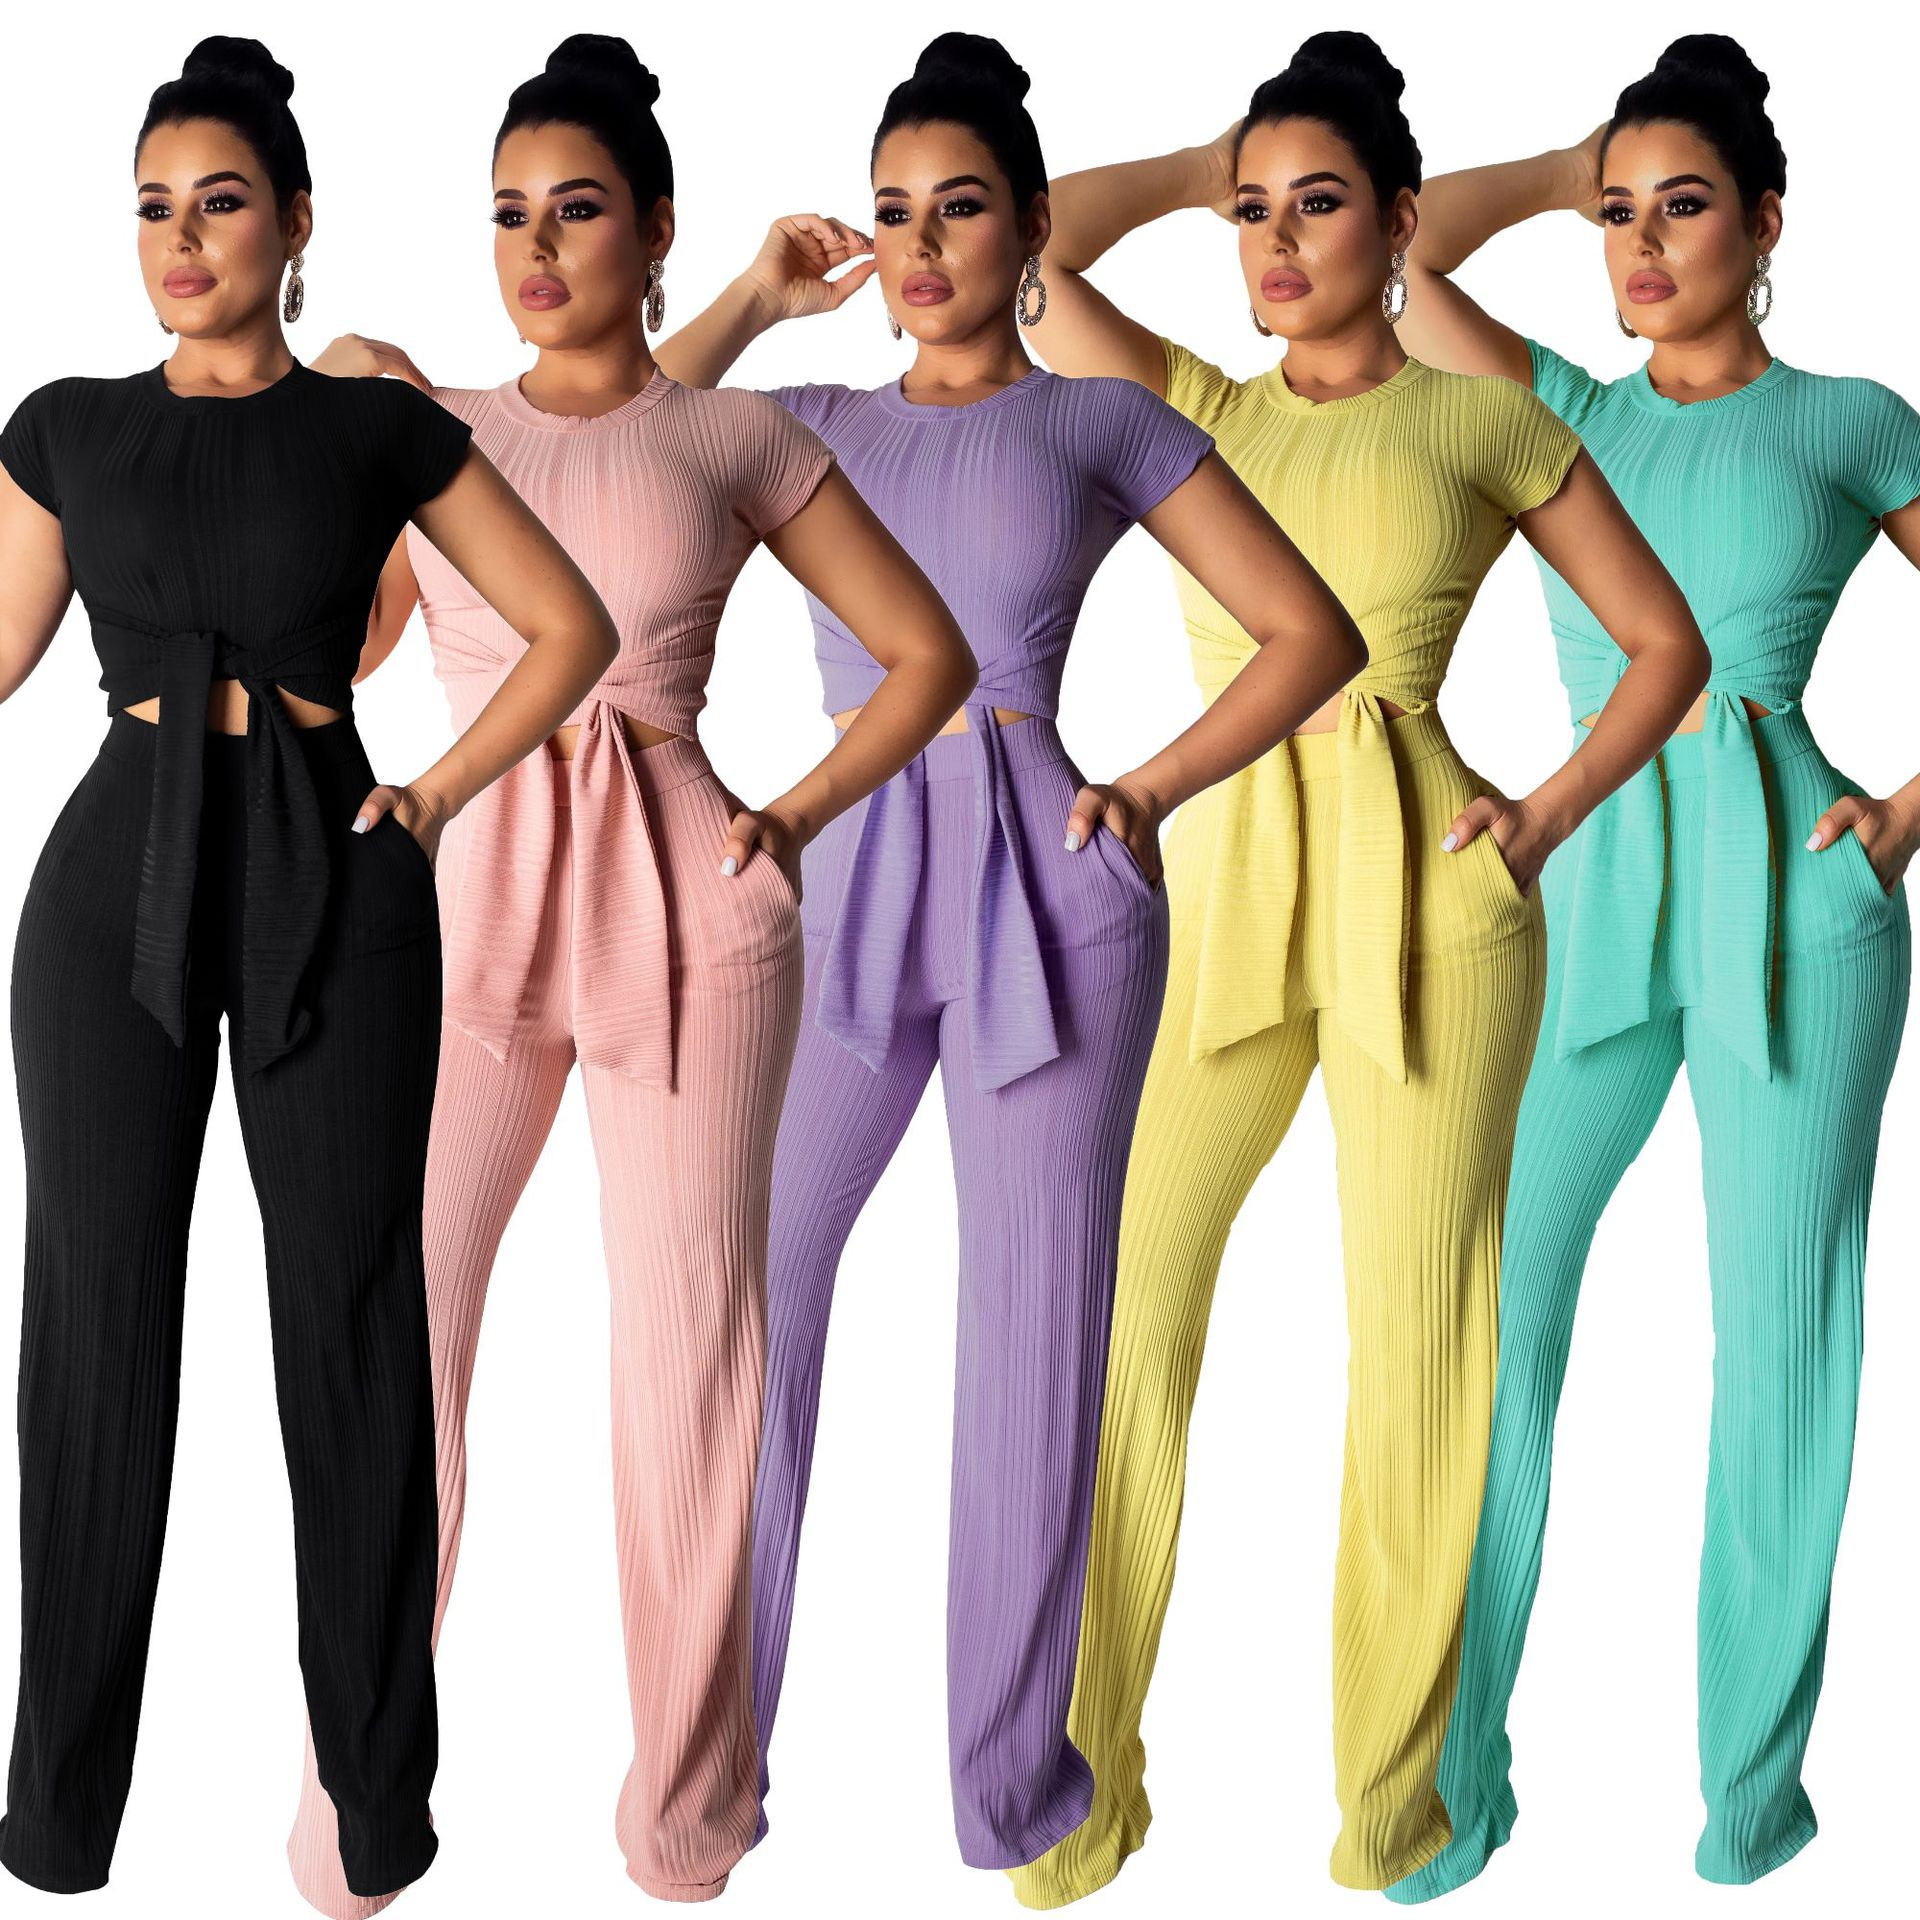 New Ensemble Femme Casual Two Piece Set Women 2019 Spring Summer Short Sleeve O Neck Tops And High Waist Pants Suits Clothing